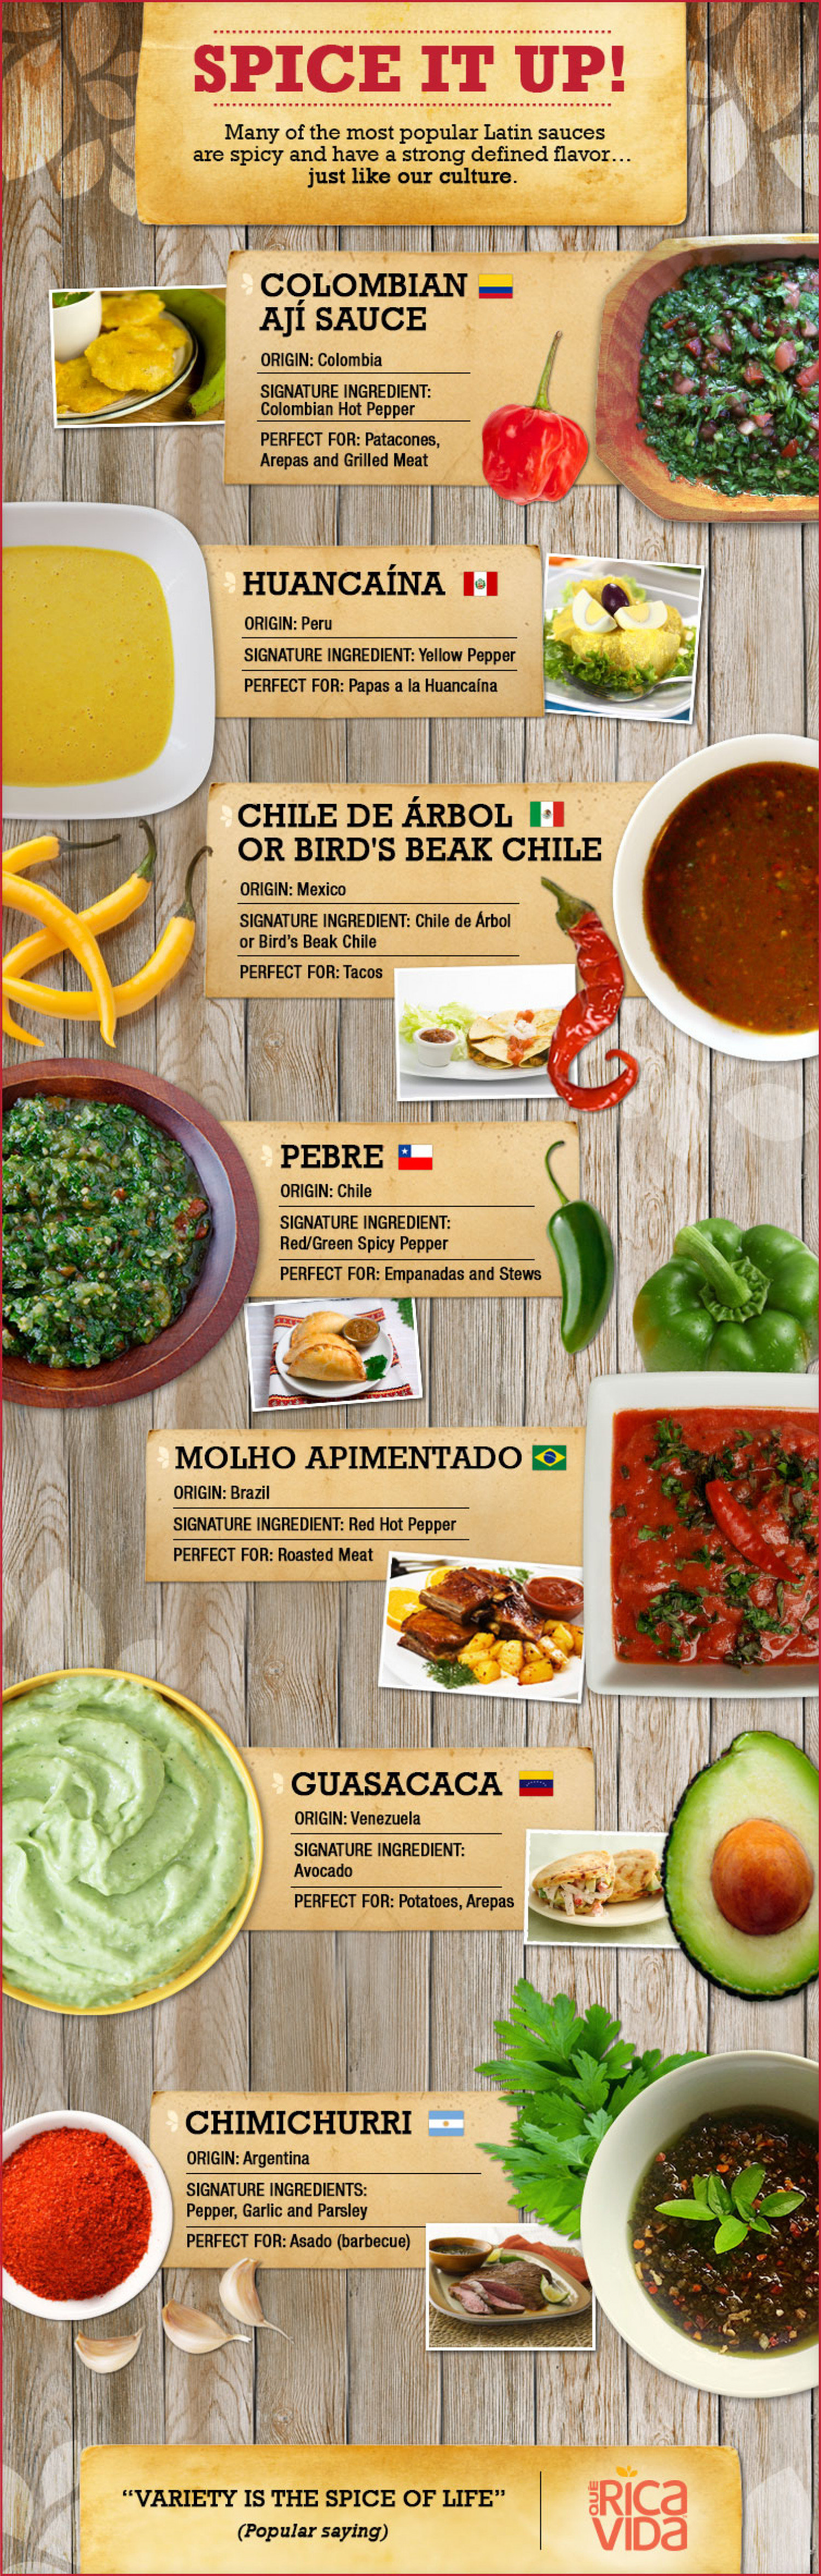 Sauce and Pepper 7 of Our Favorite Latino Sauces